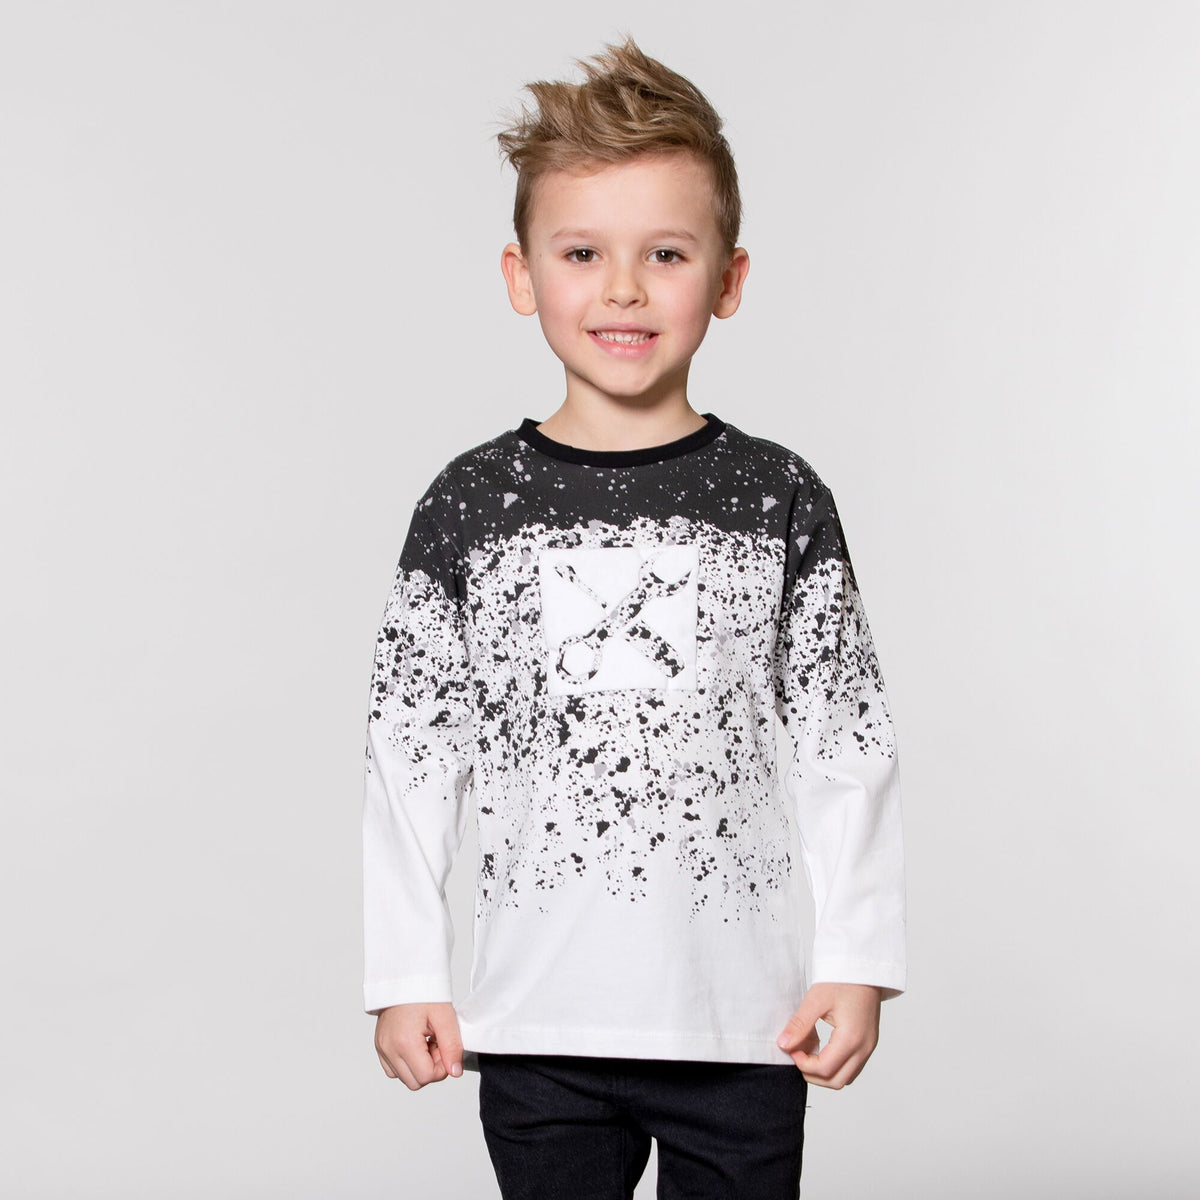 Boys Long Sleeve Black and White Top